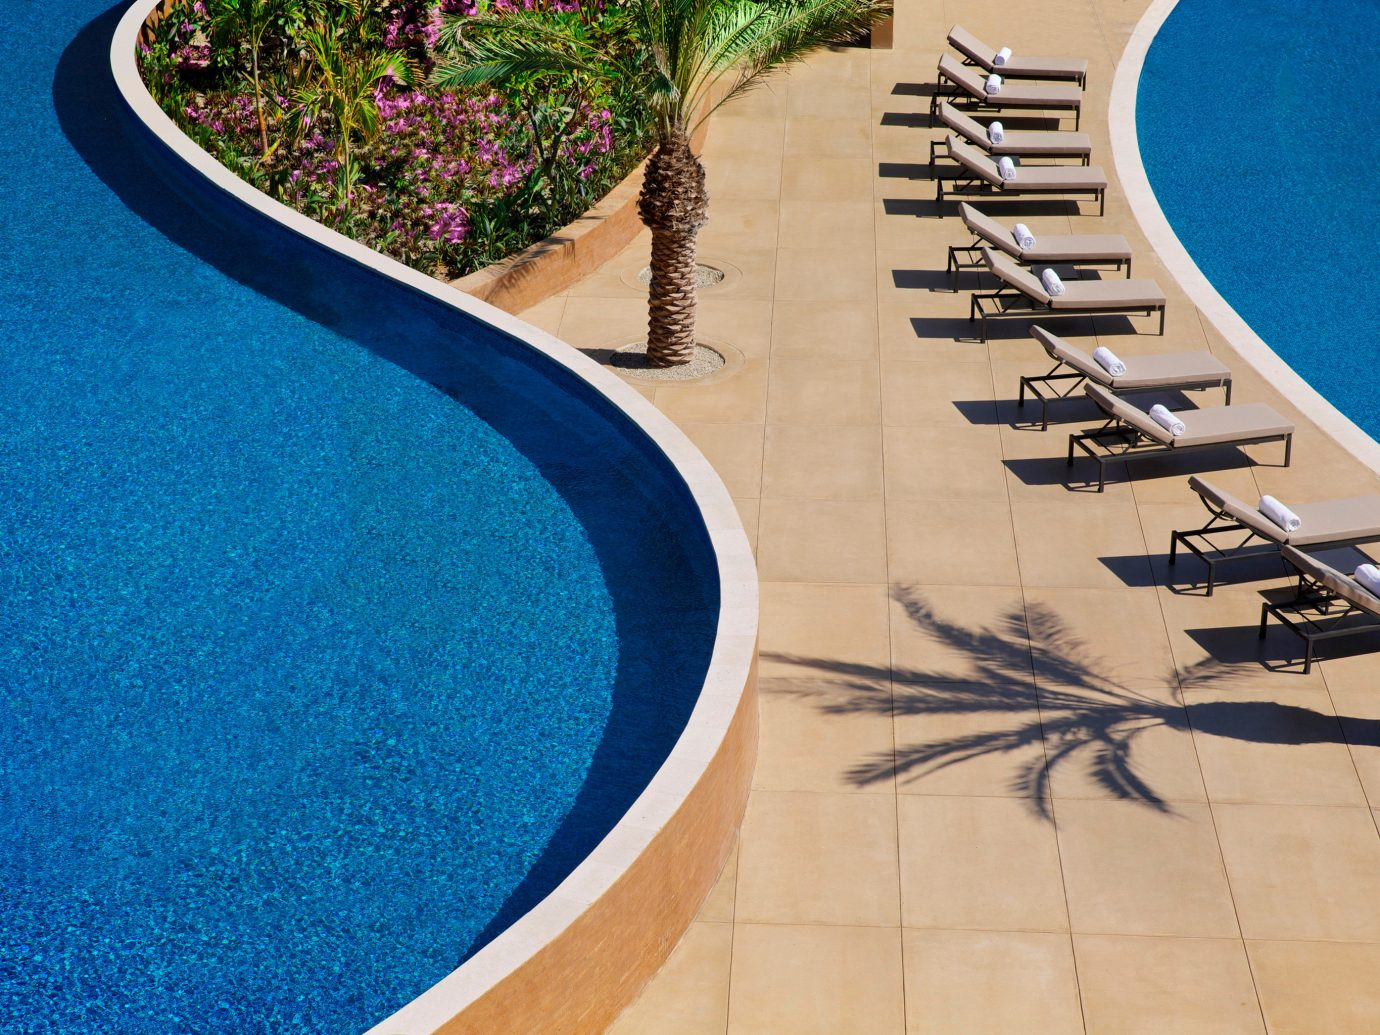 Budget Hotels blue swimming pool floor flooring walkway